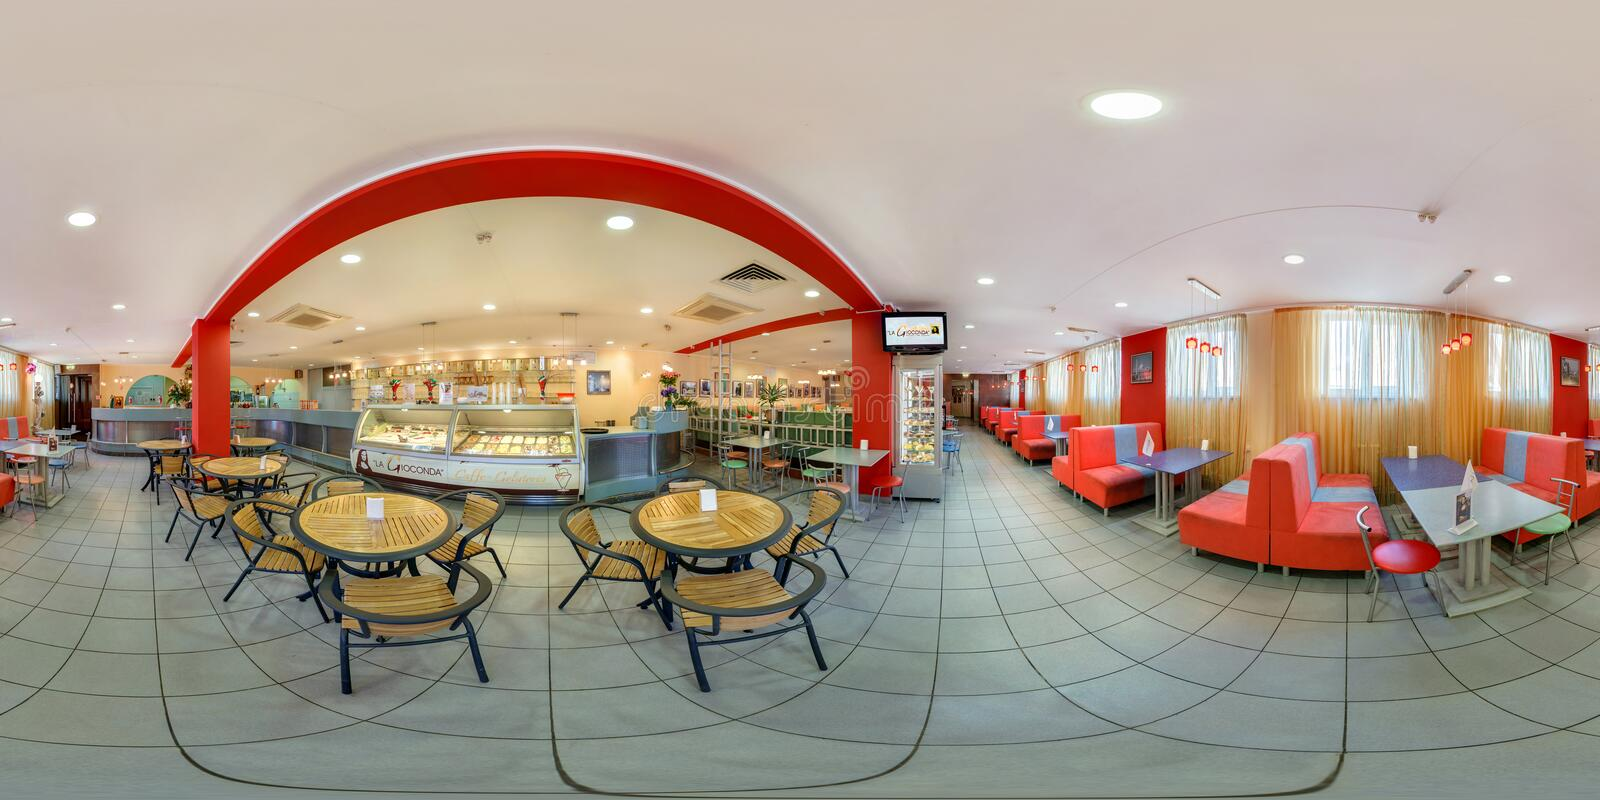 GOMEL, BELARUS - MAY 26, 2012: Full 360 panorama in equirectangular spherical equidistant projection in interier children`s cafe. With sweets and ice cream stock image